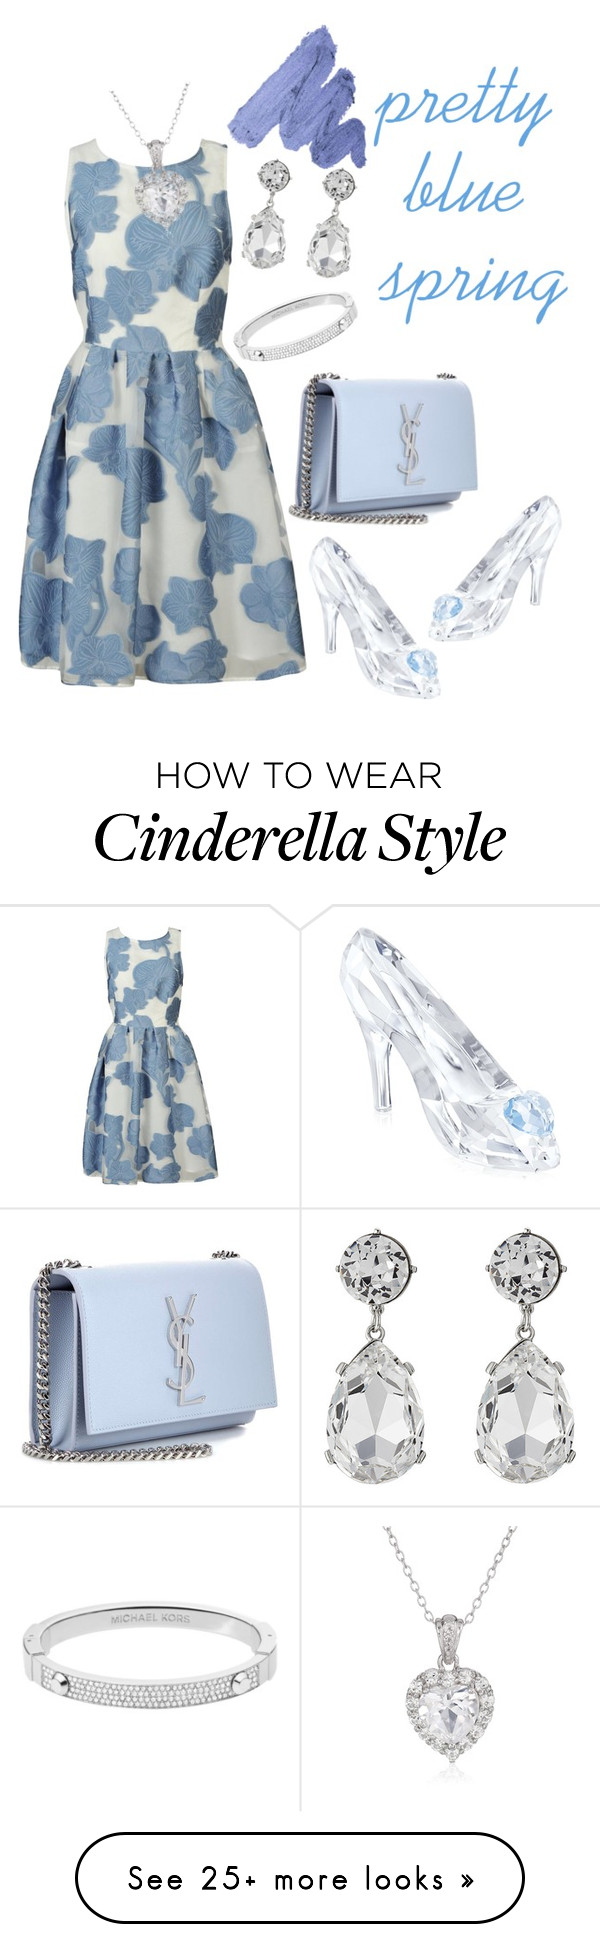 """""""Pretty Blue Spring"""" by nur-agni-rh on Polyvore featuring P.A.R.O.S.H., Swarovski, Yves Saint Laurent, Michael Kors, Kenneth Jay Lane, Spring and Blue"""